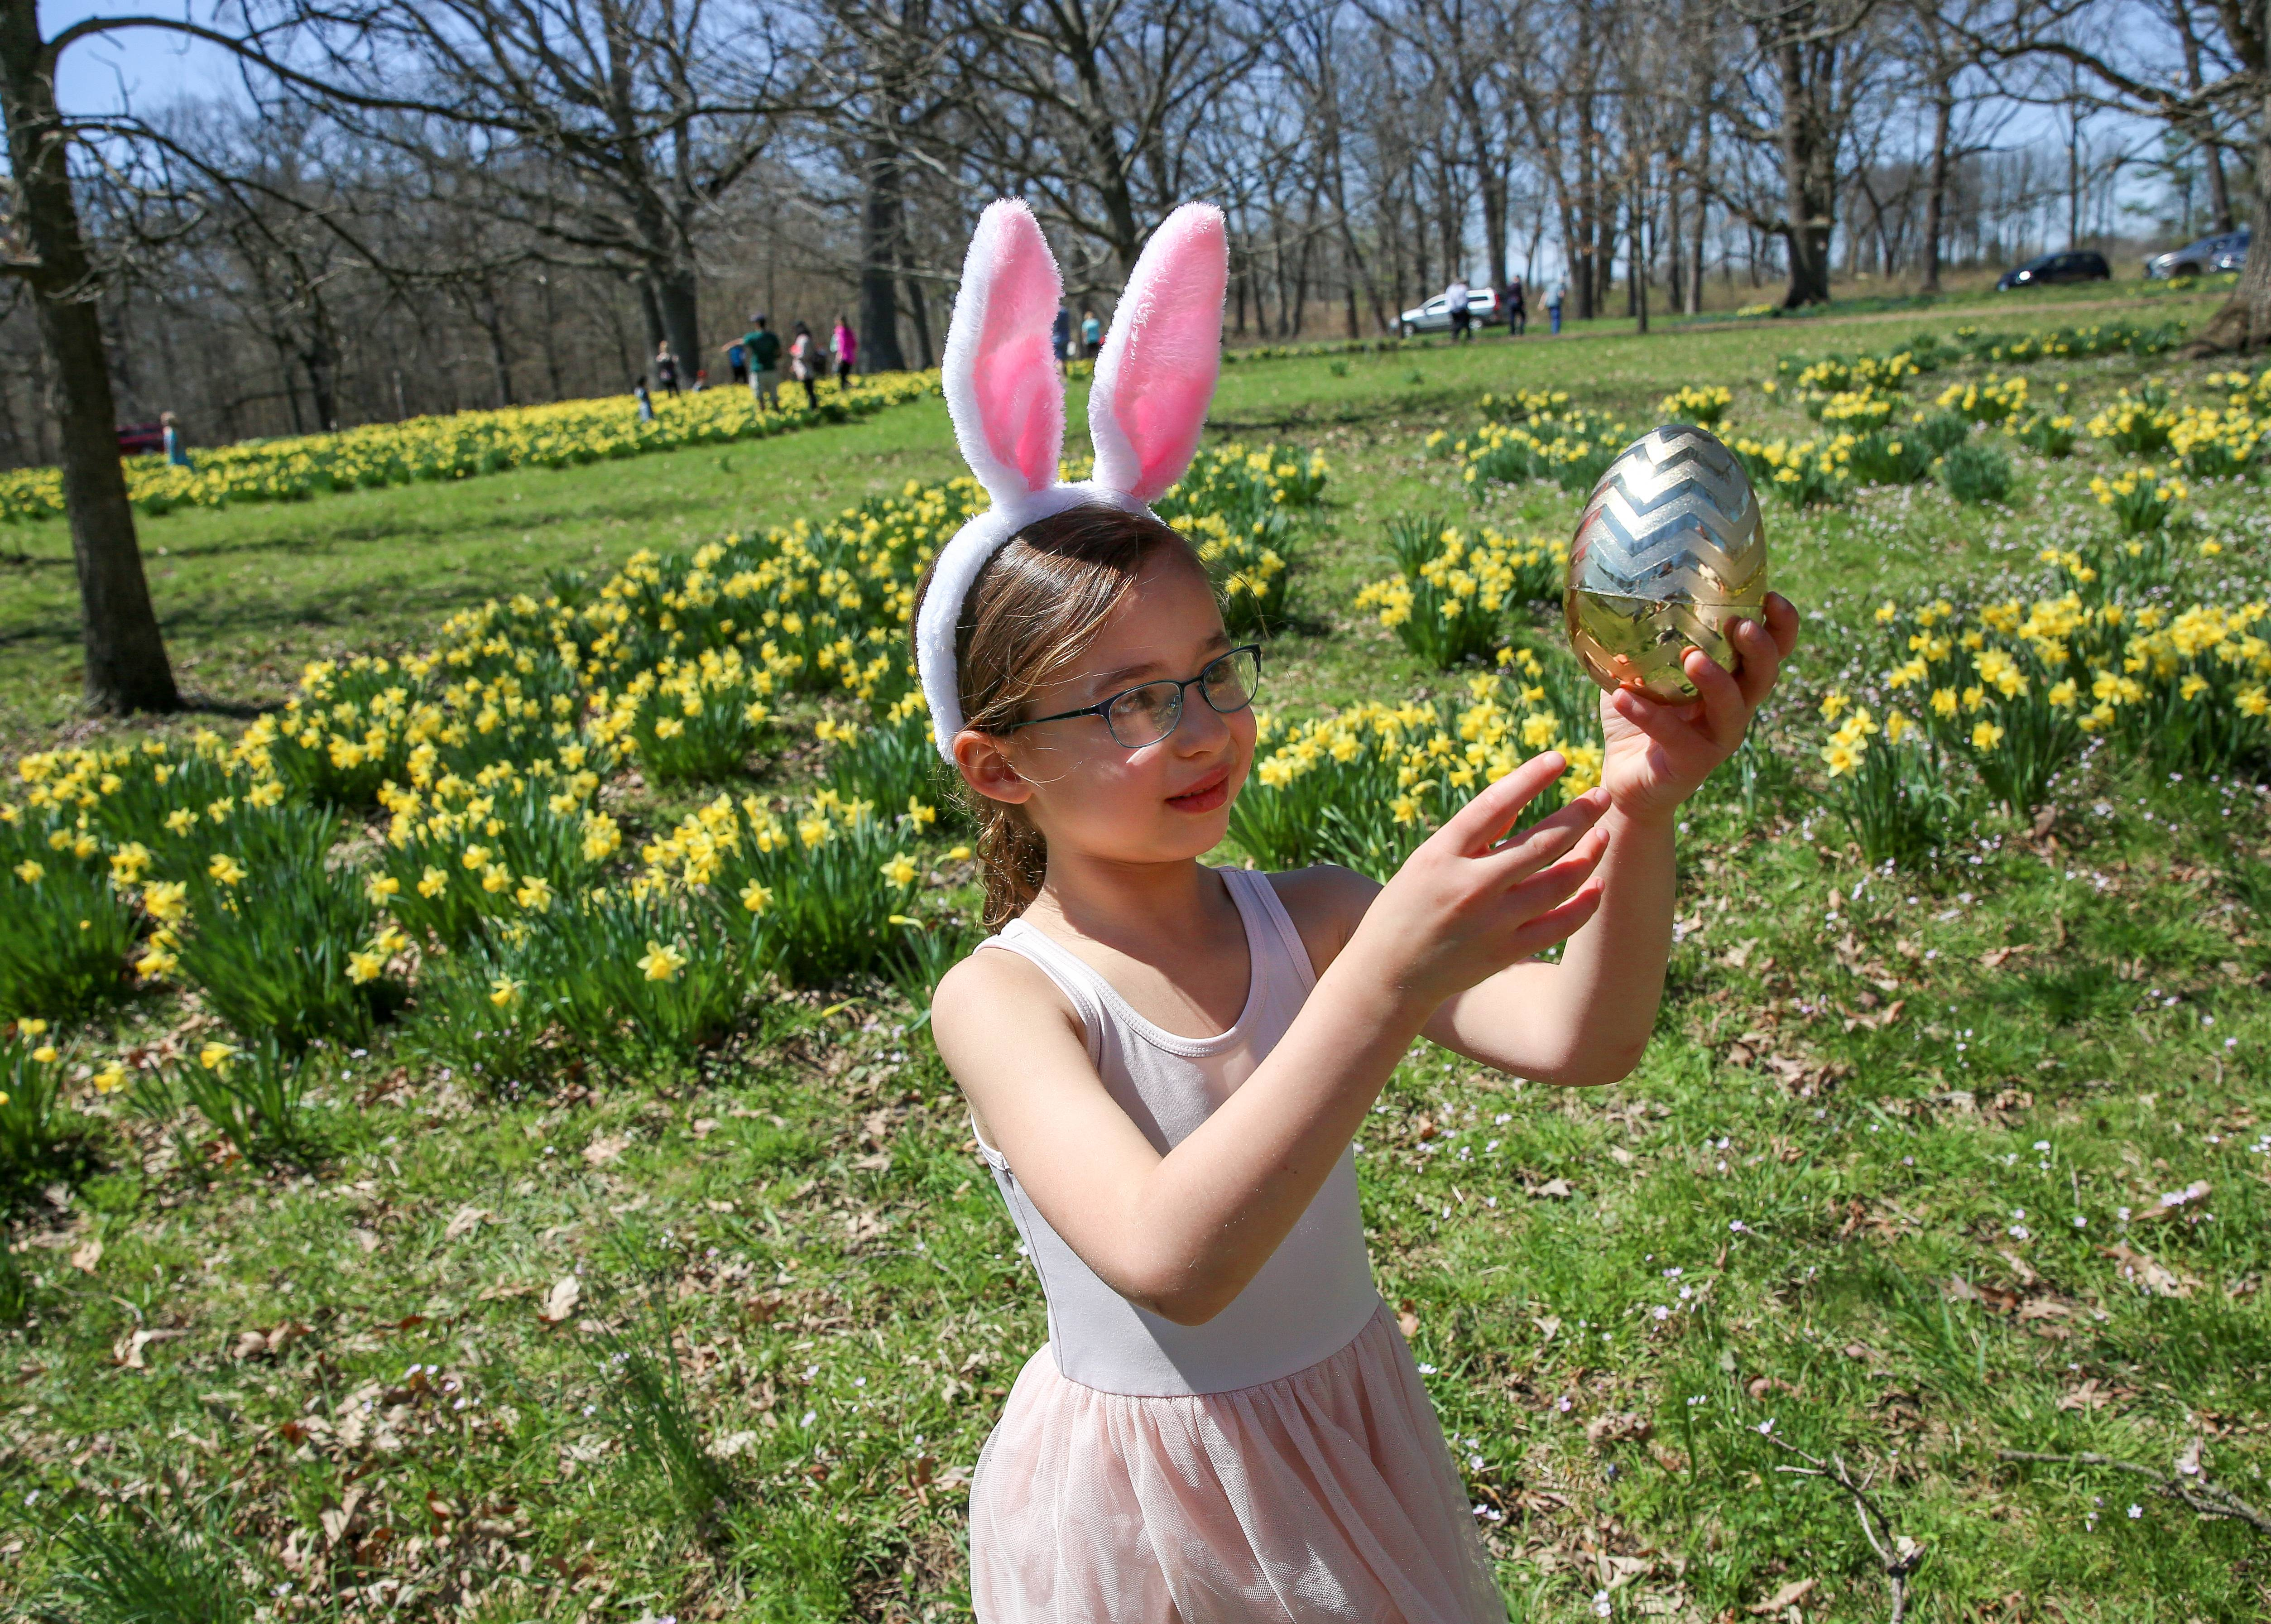 The annual Easter egg hunt and pictures with the Easter Bunny at Viking Park in Gurnee. Participants also could find a special egg and win a prize.